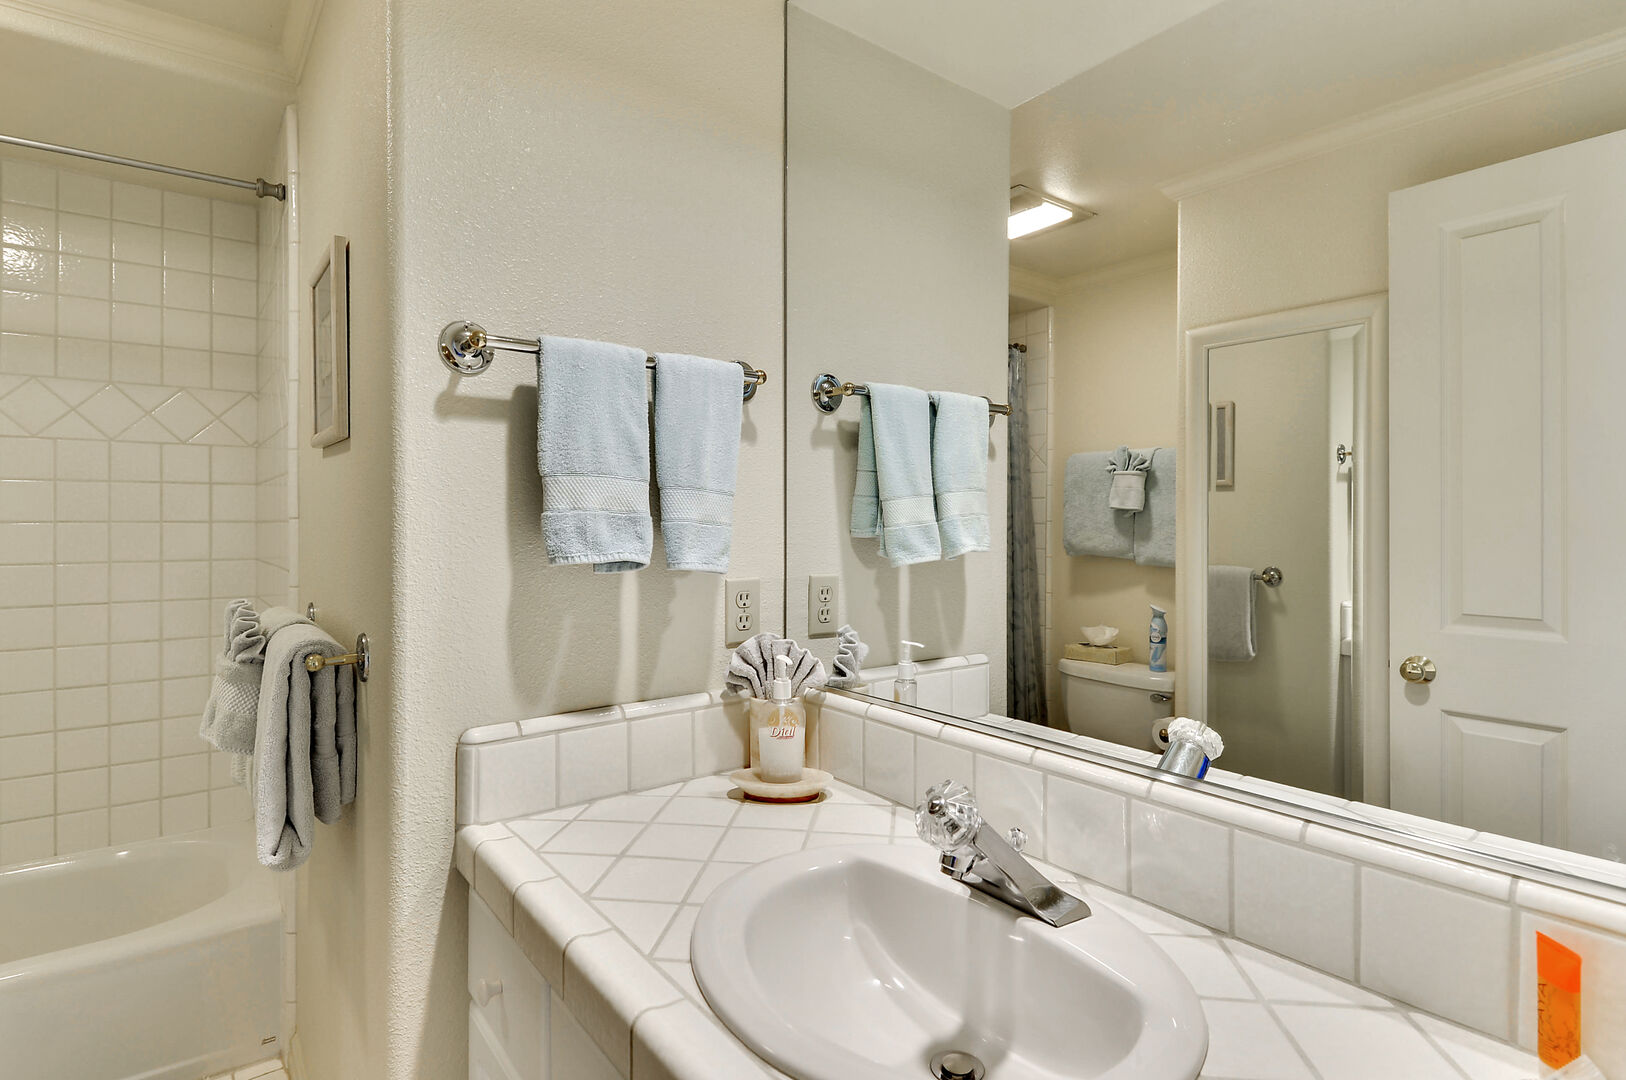 Full Bathroom with Tub/ Shower Kit, and Mirror.